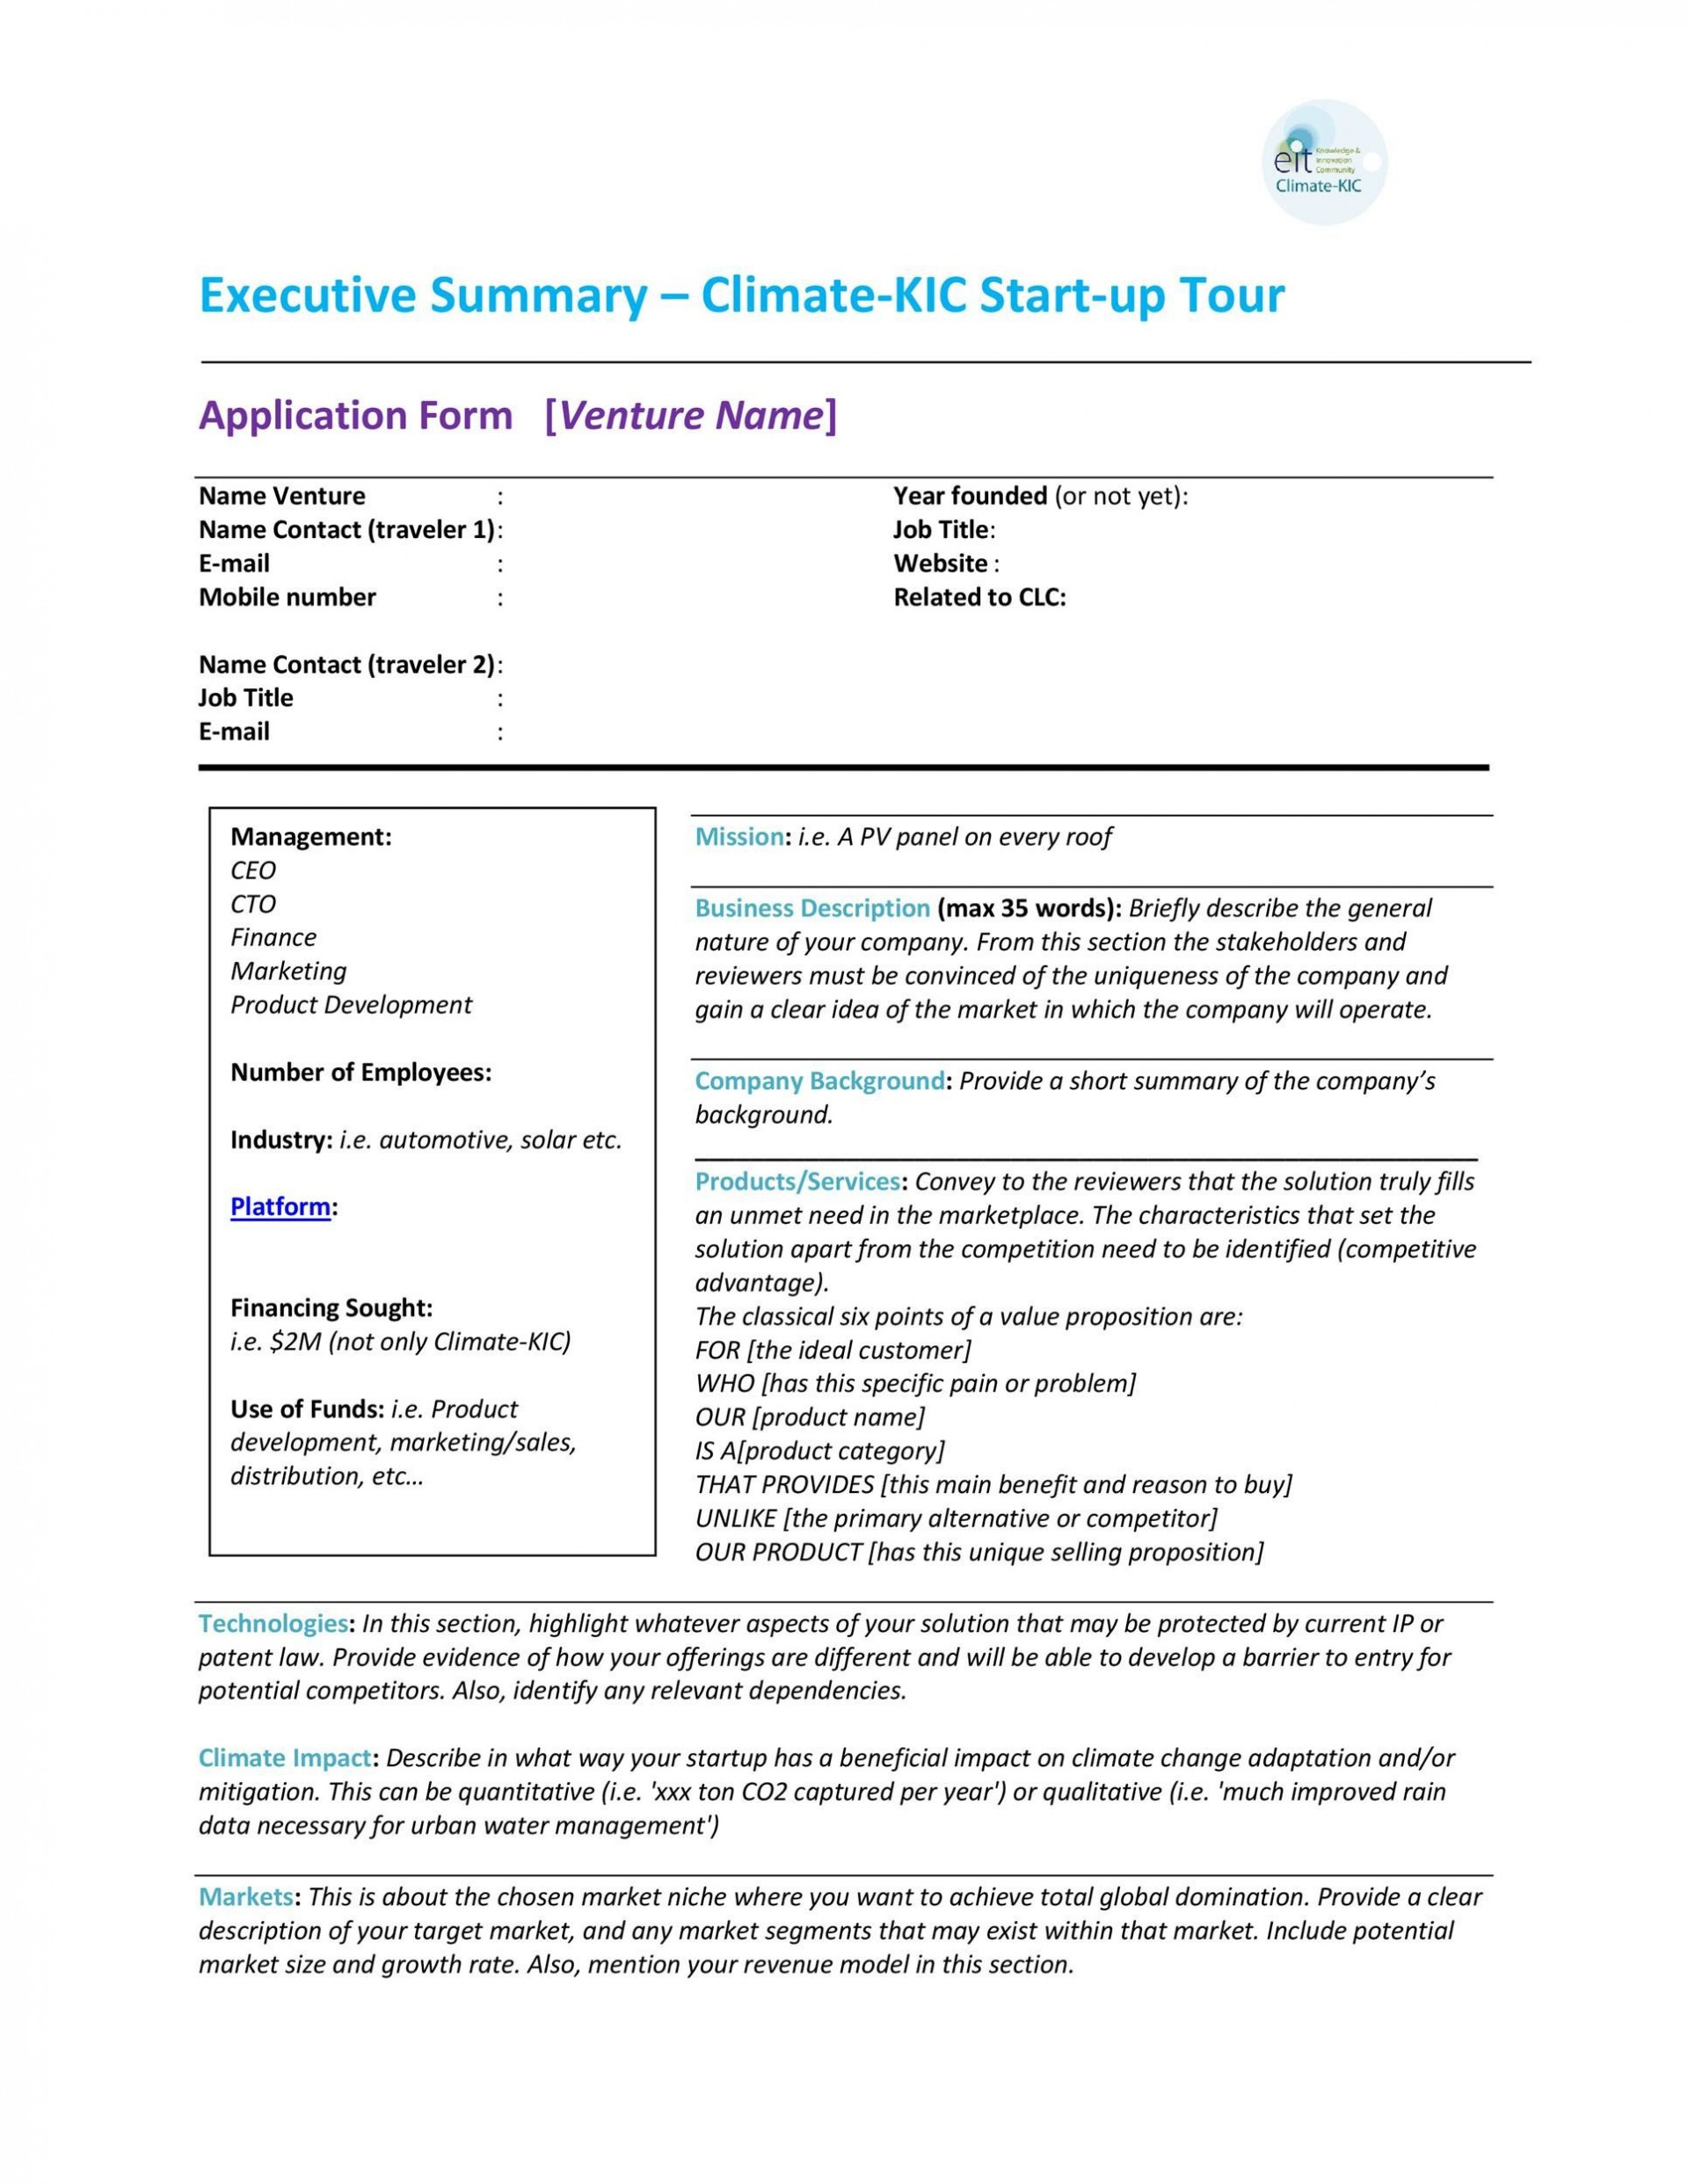 009 Breathtaking Executive Summary Word Template Free Download Image 1920